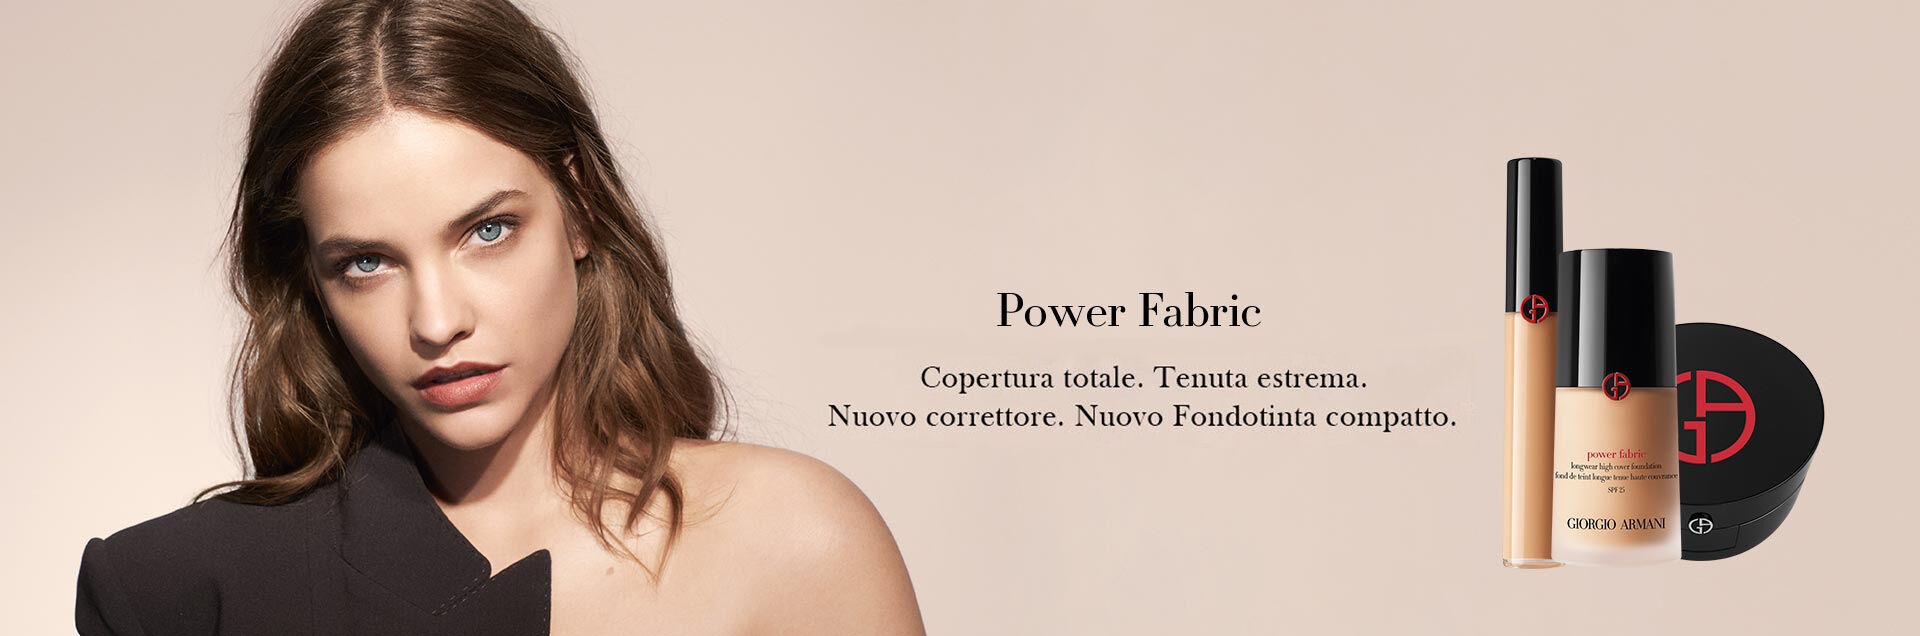 Power Fabric